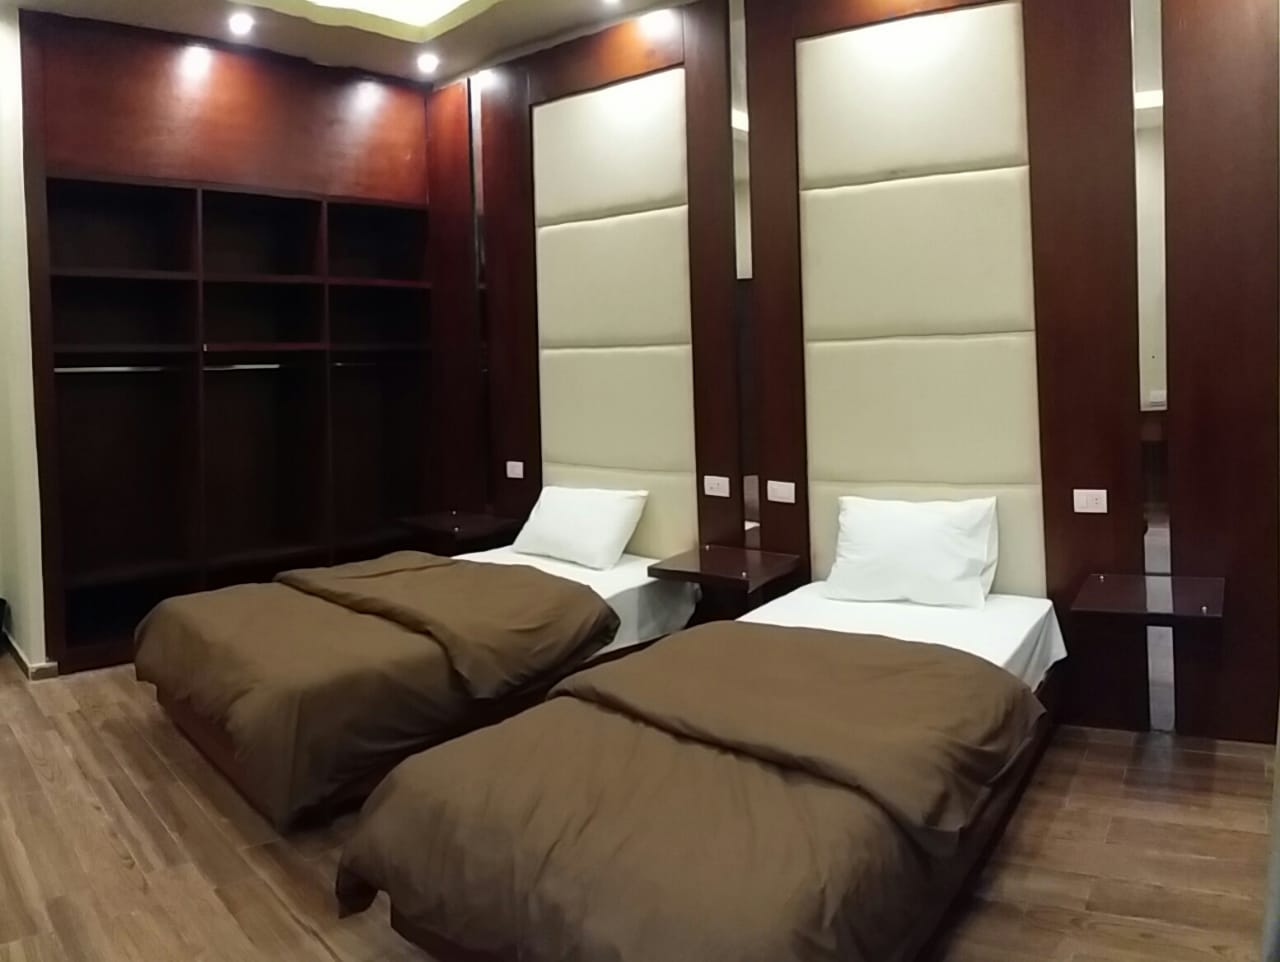 Grand Palace Hotel, Cairo, Egypt, youth hostel and backpackers hostel world best places to stay in Cairo